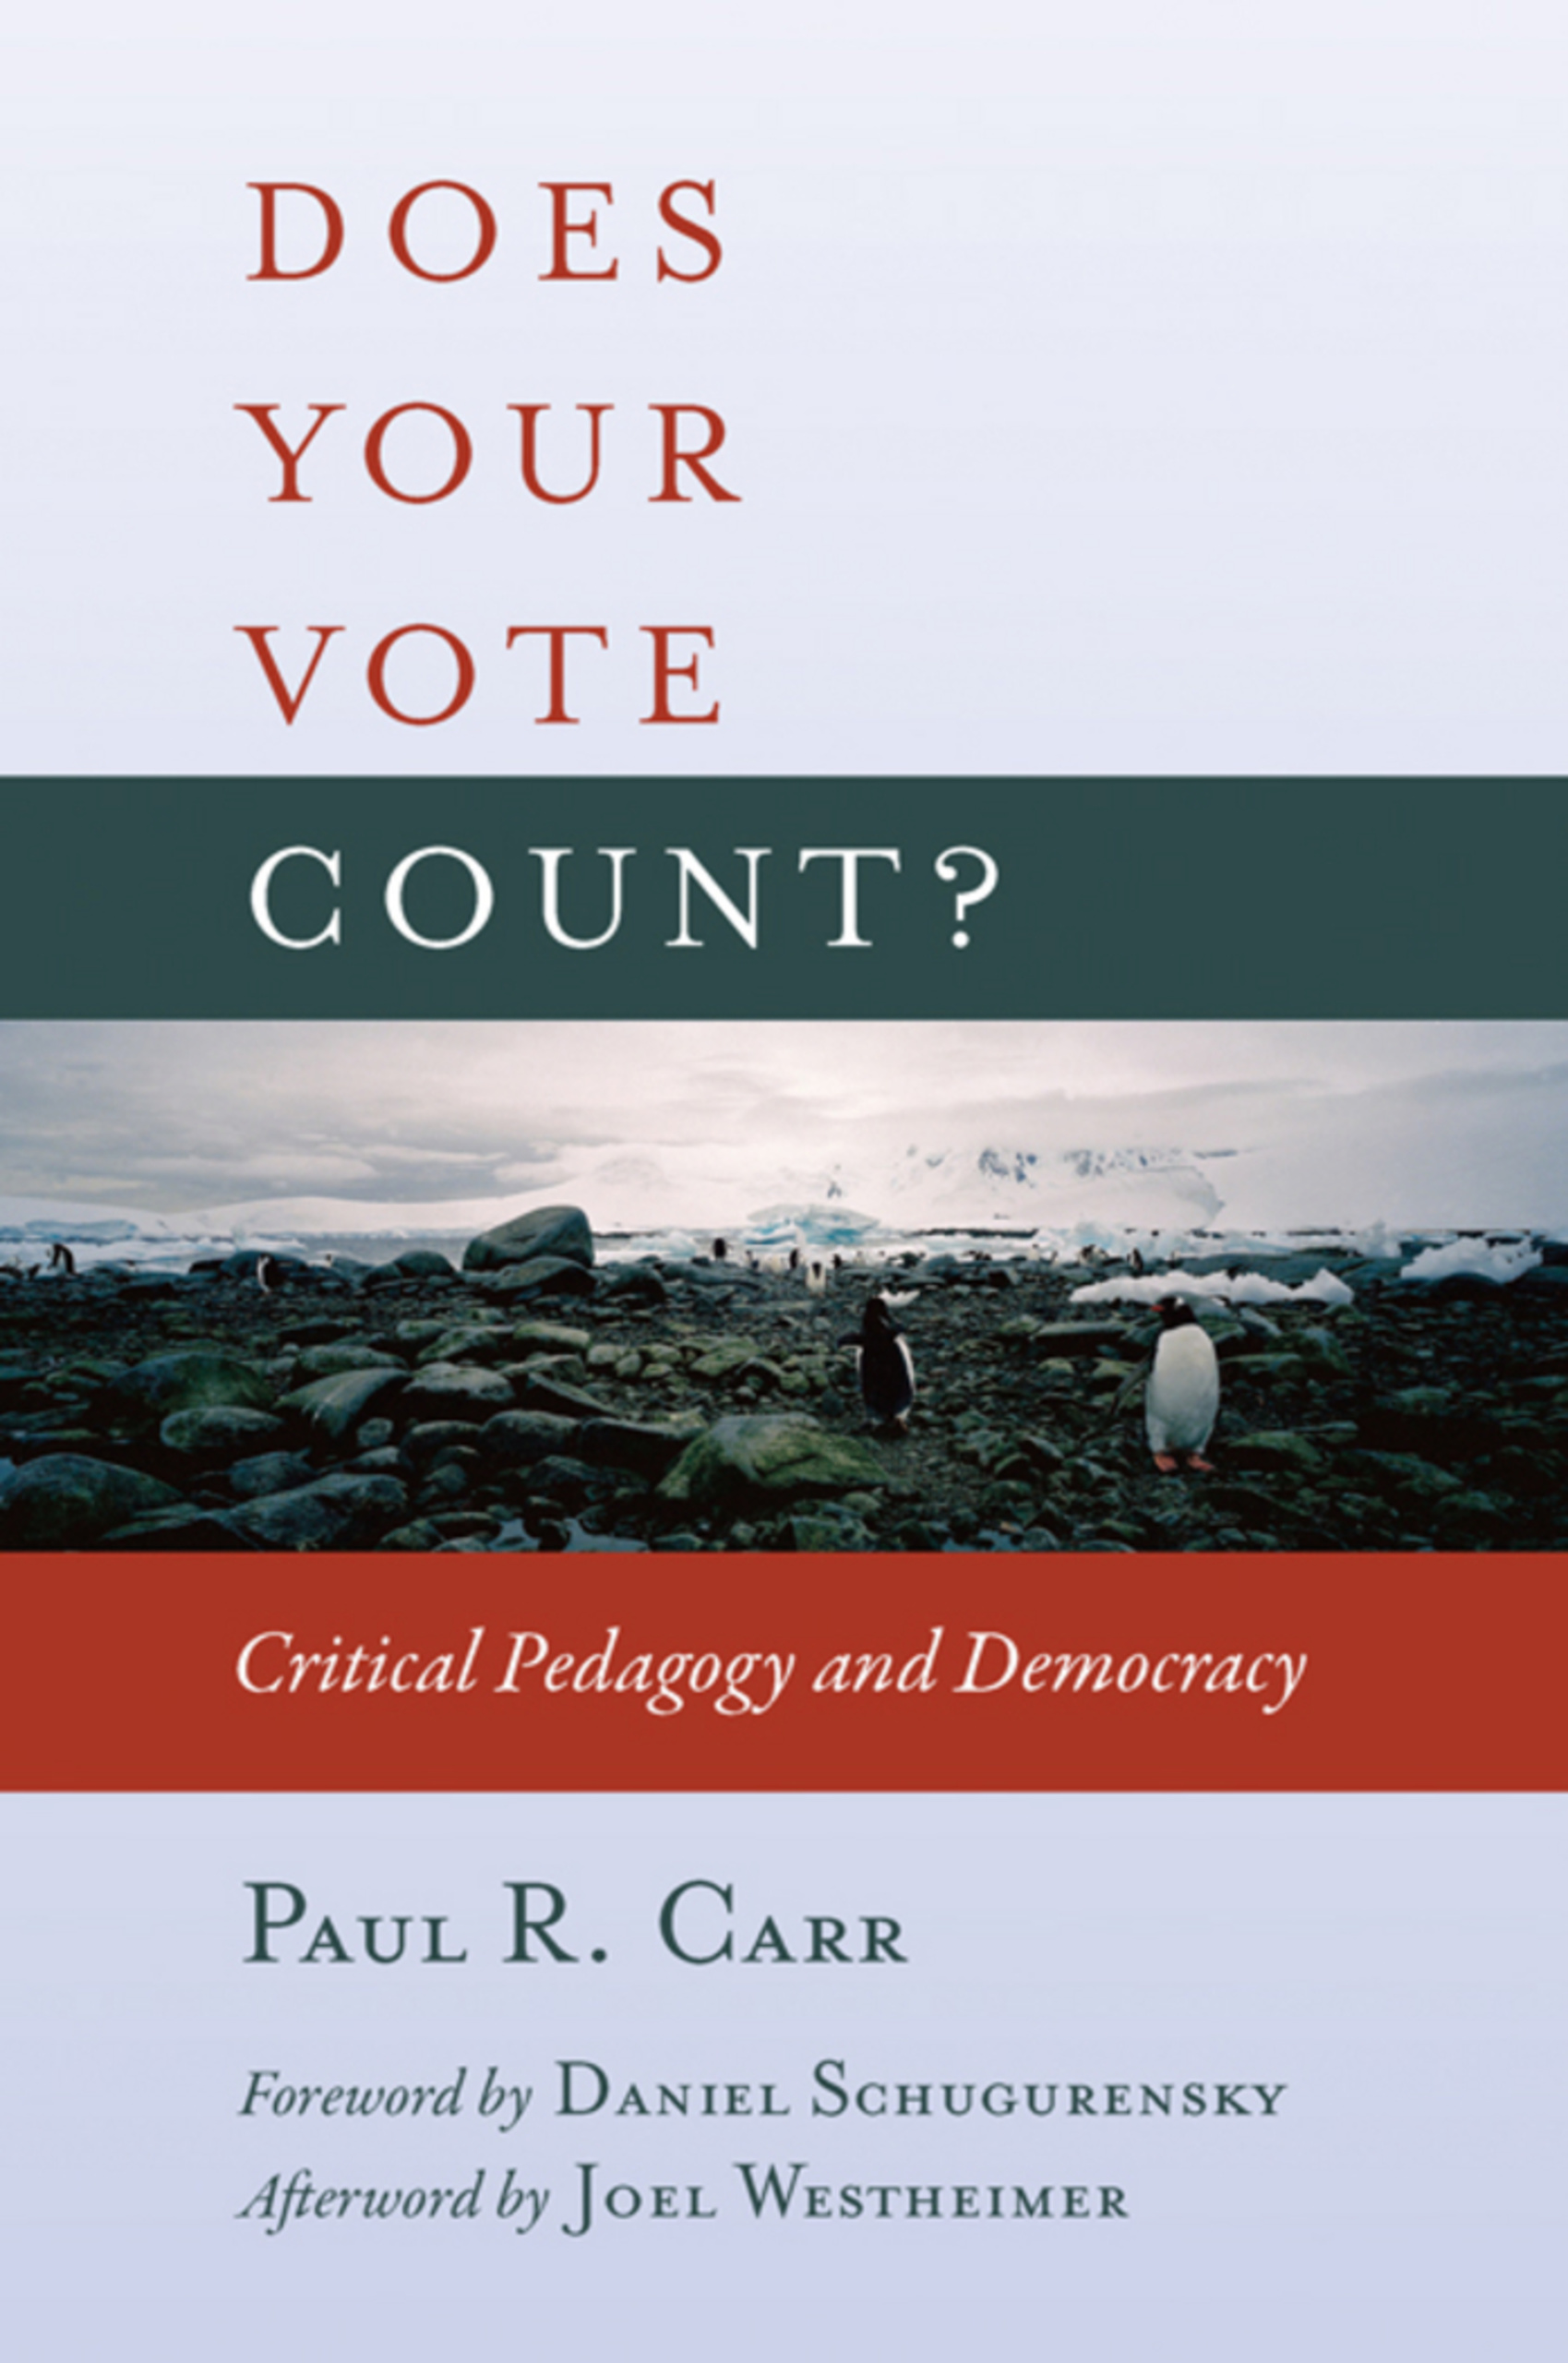 Title: Does Your Vote Count?